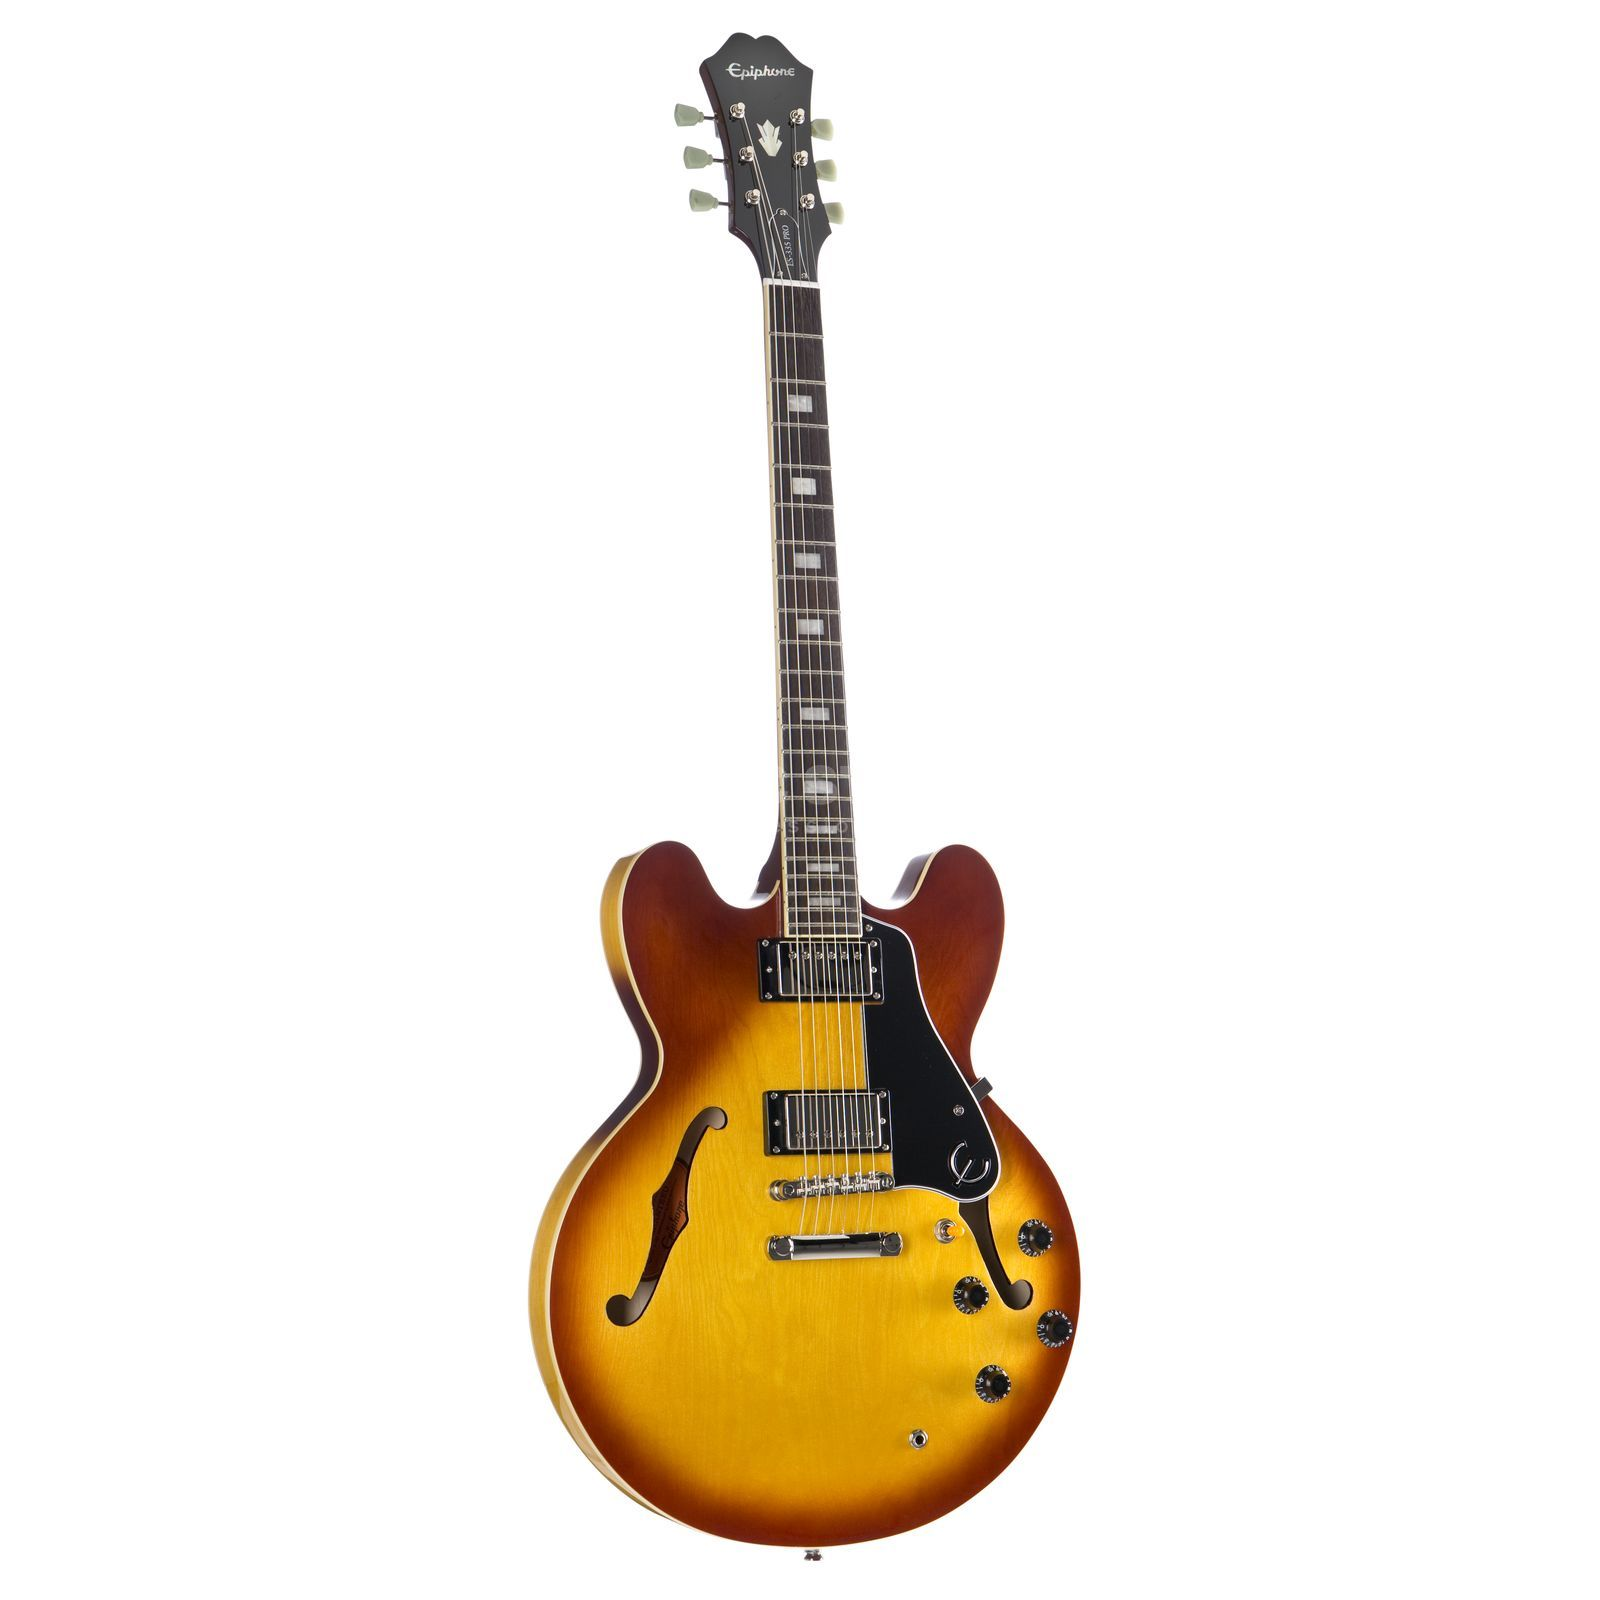 Epiphone ES-335 Pro Limited Edition Iced Tea Productafbeelding